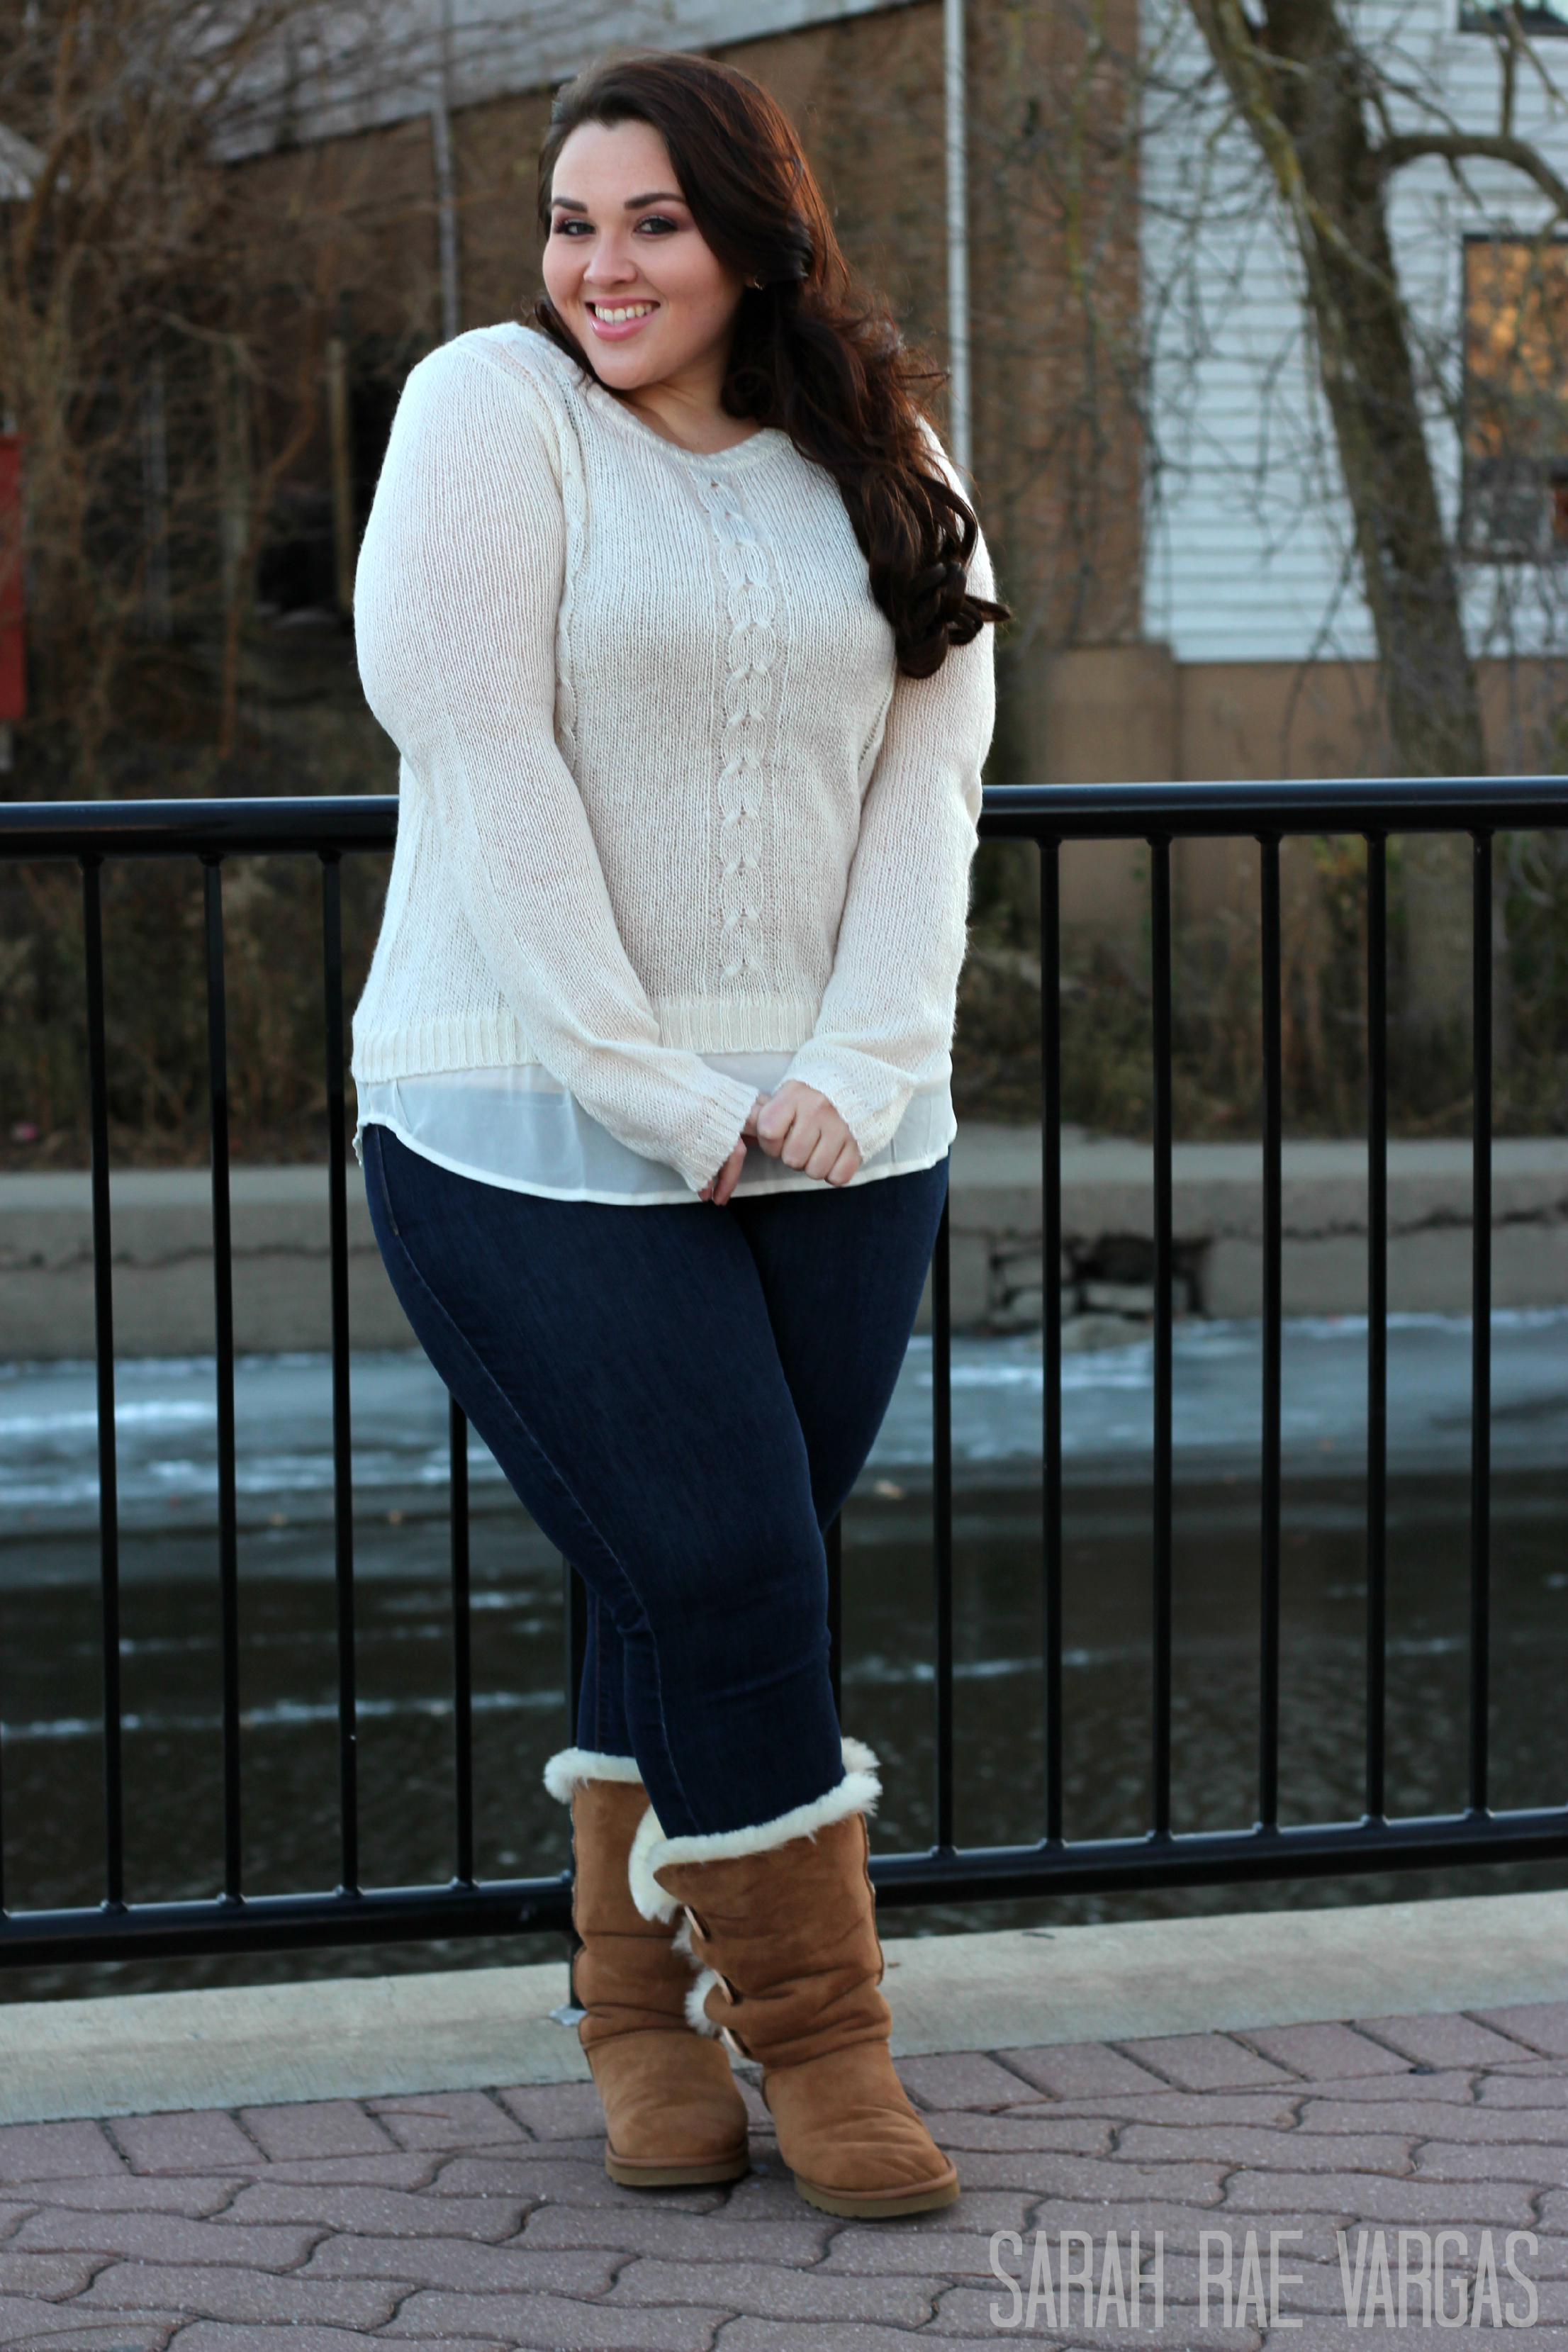 Wide Calf Boots Lookbook [Plus Size Fashion] - Sarah Rae Vargas